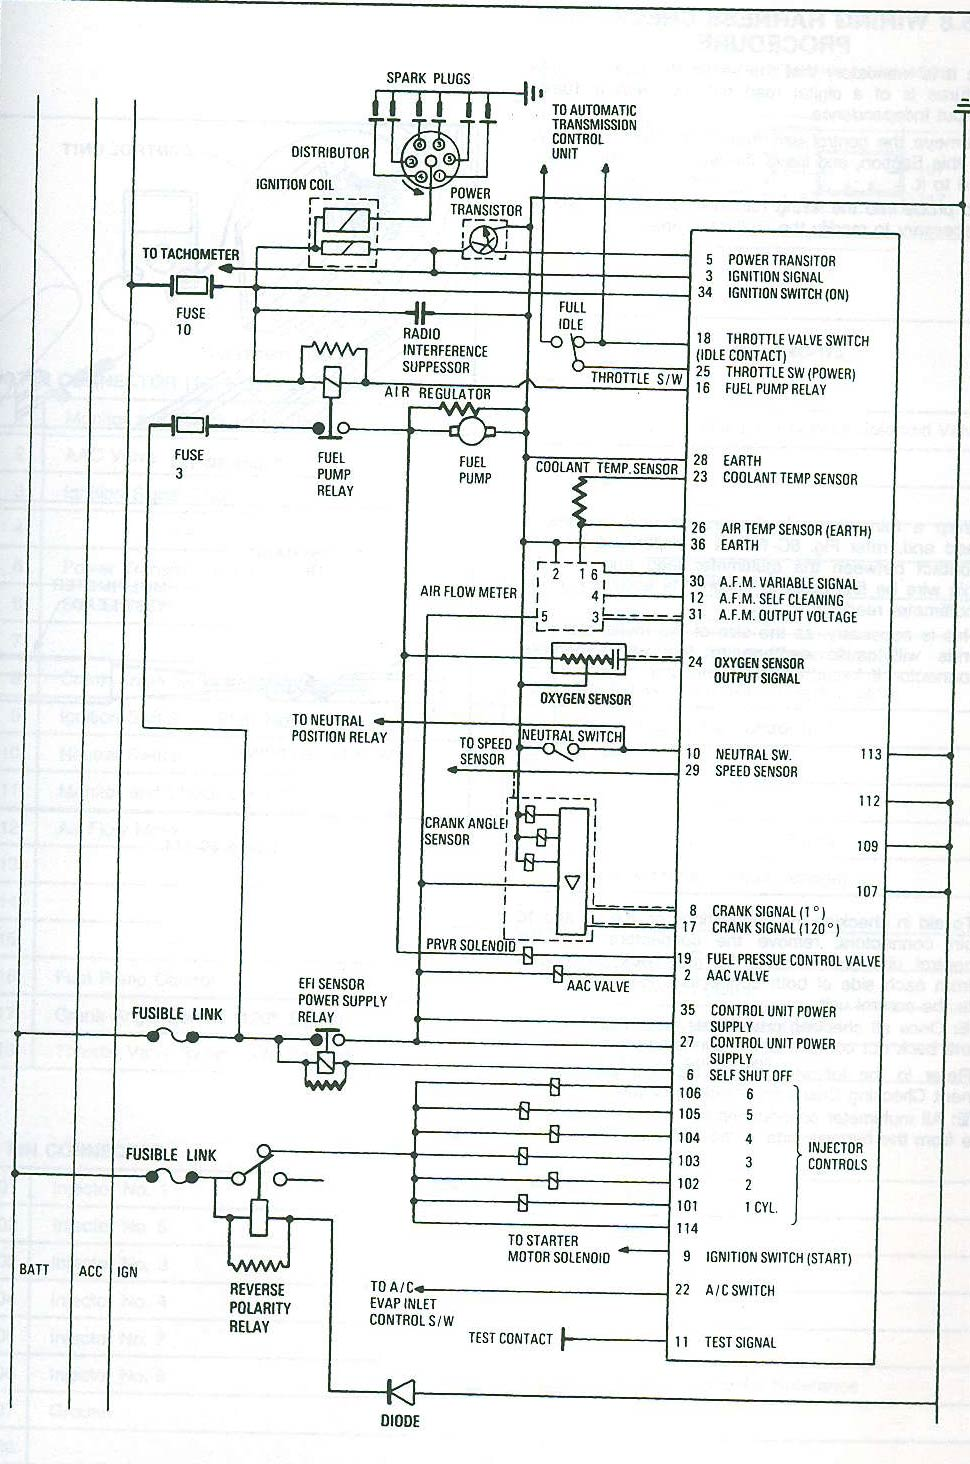 ecuwiring vl commodore dash wiring diagram efcaviation com vt commodore fuel pump wiring diagram at bayanpartner.co